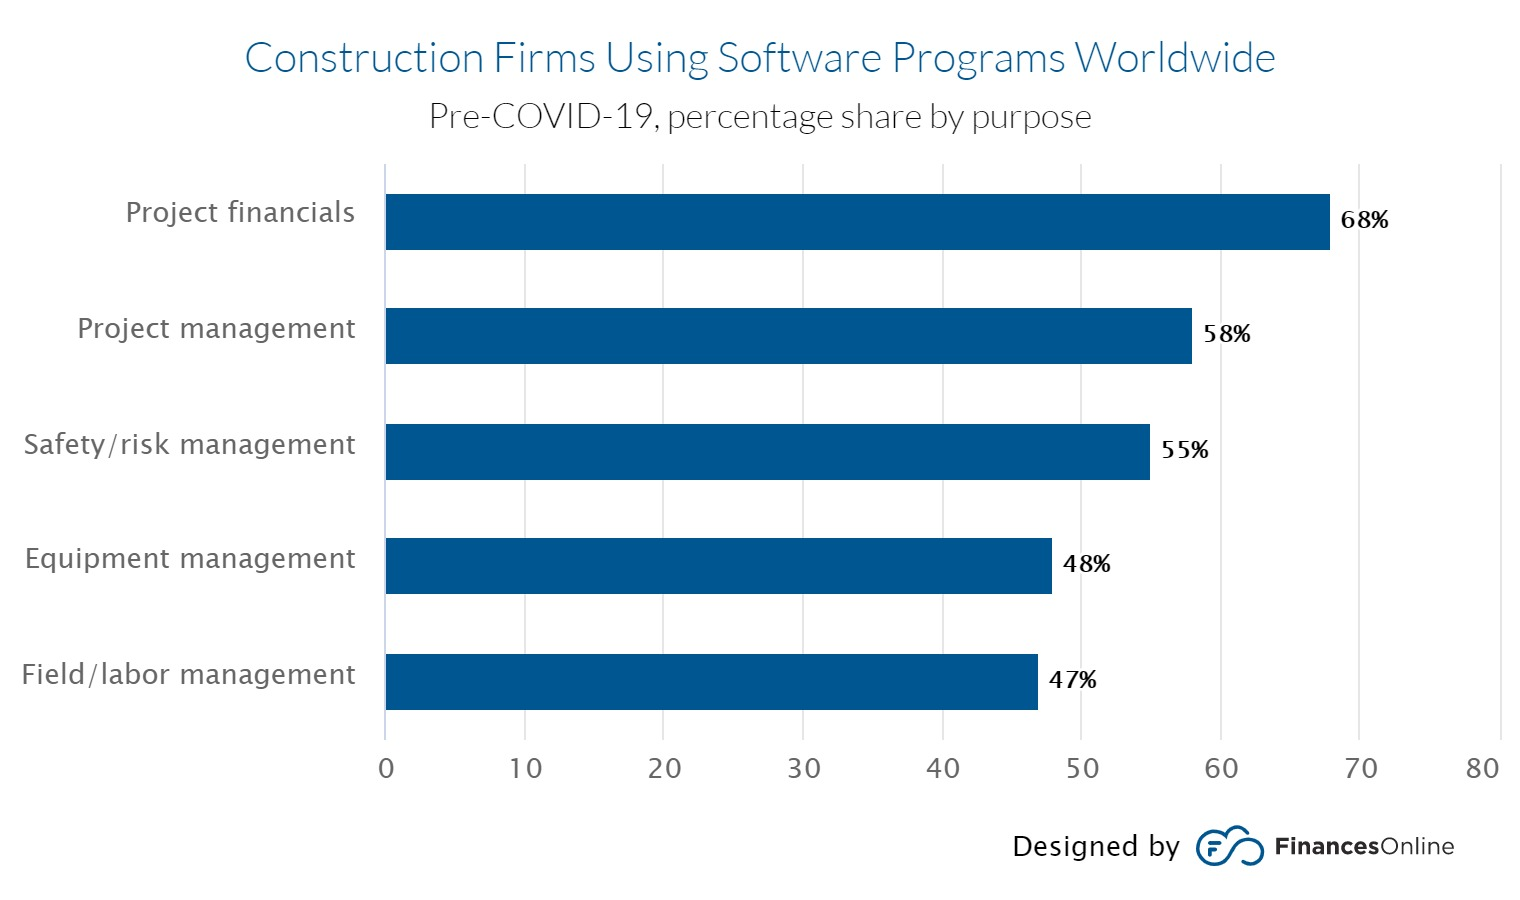 Construction firms using software programs. 68% for projecting financials